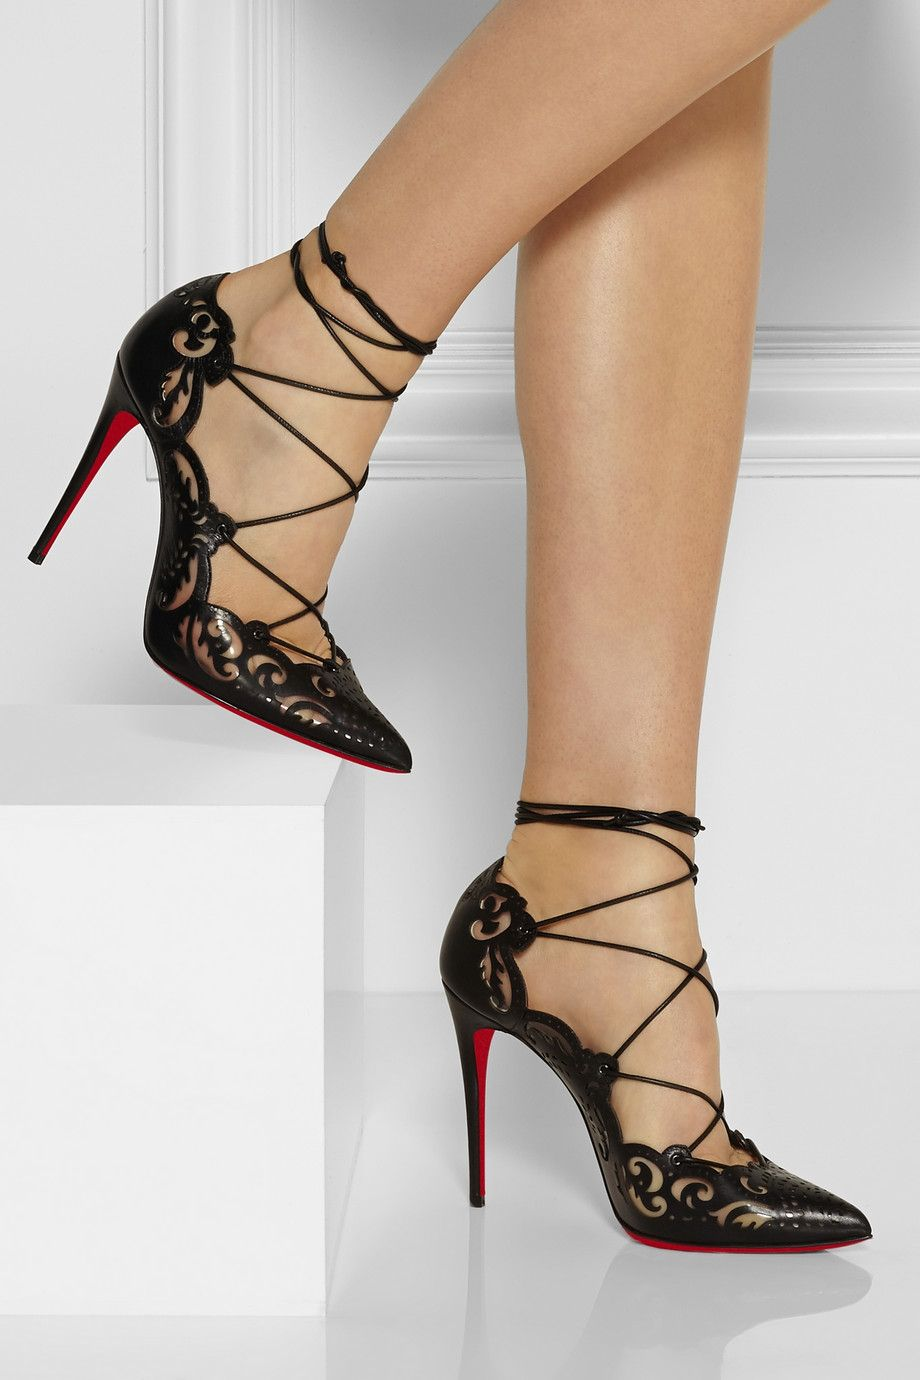 Black Friday Women's shoes Christian Louboutin wave Black 1150240BK01 Online Trading Station